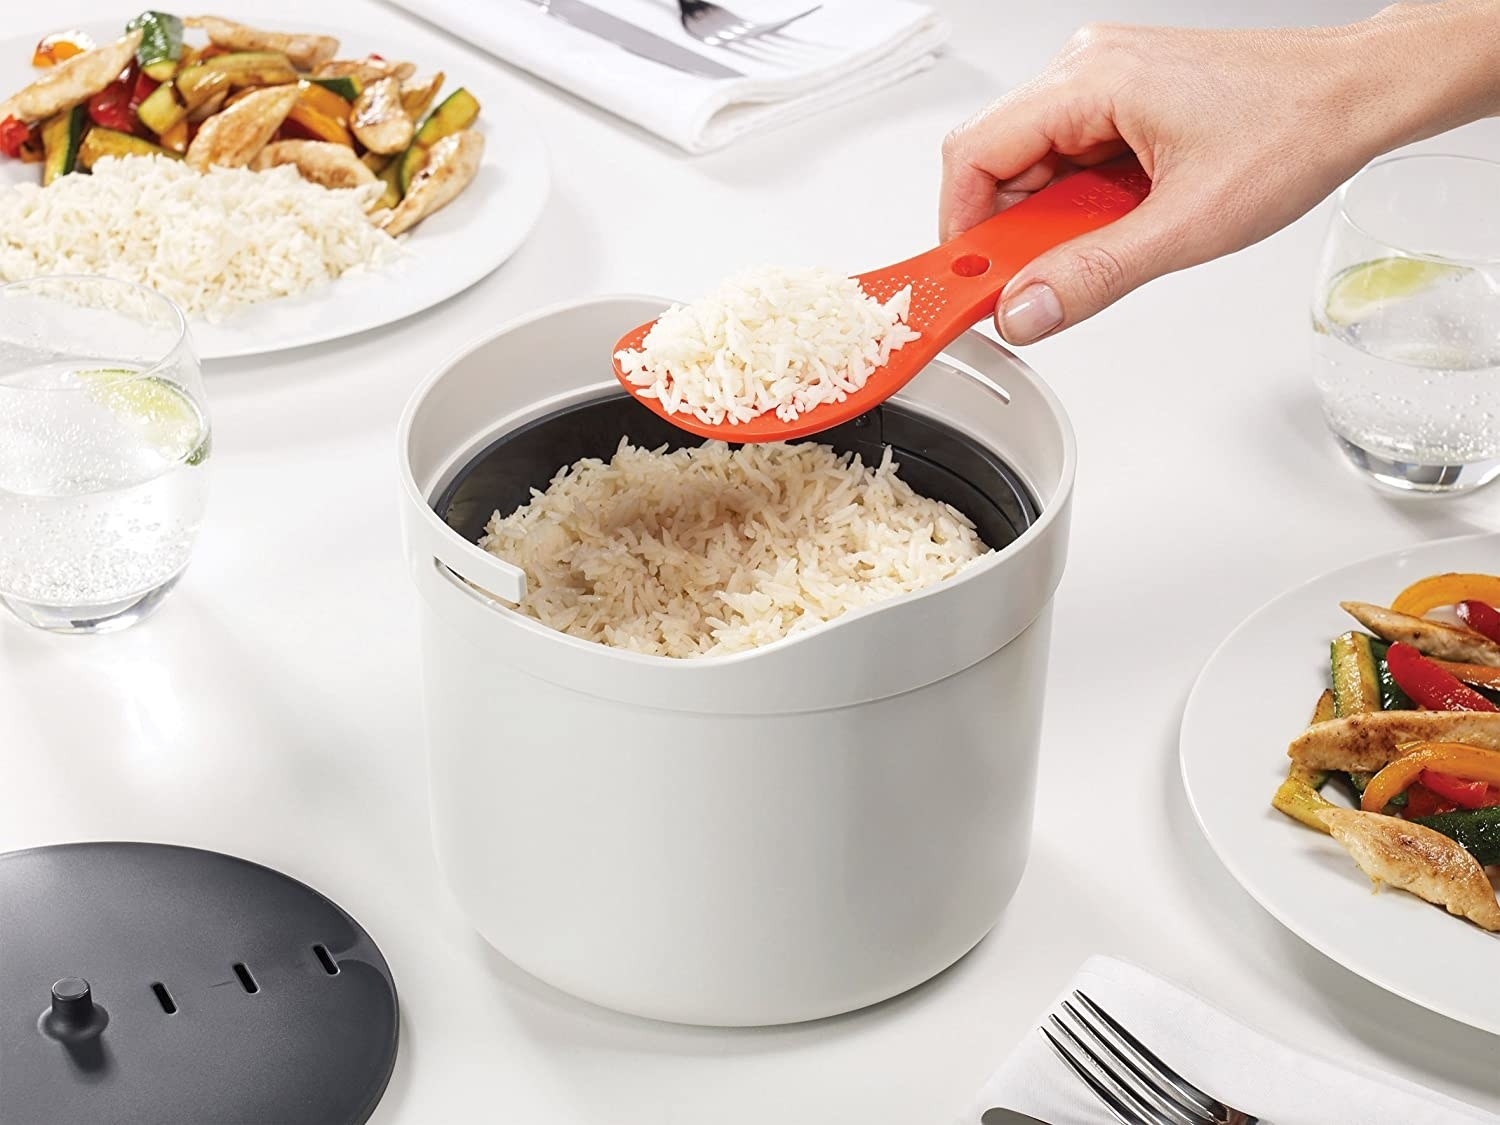 A person portioning out a spoonful of rice